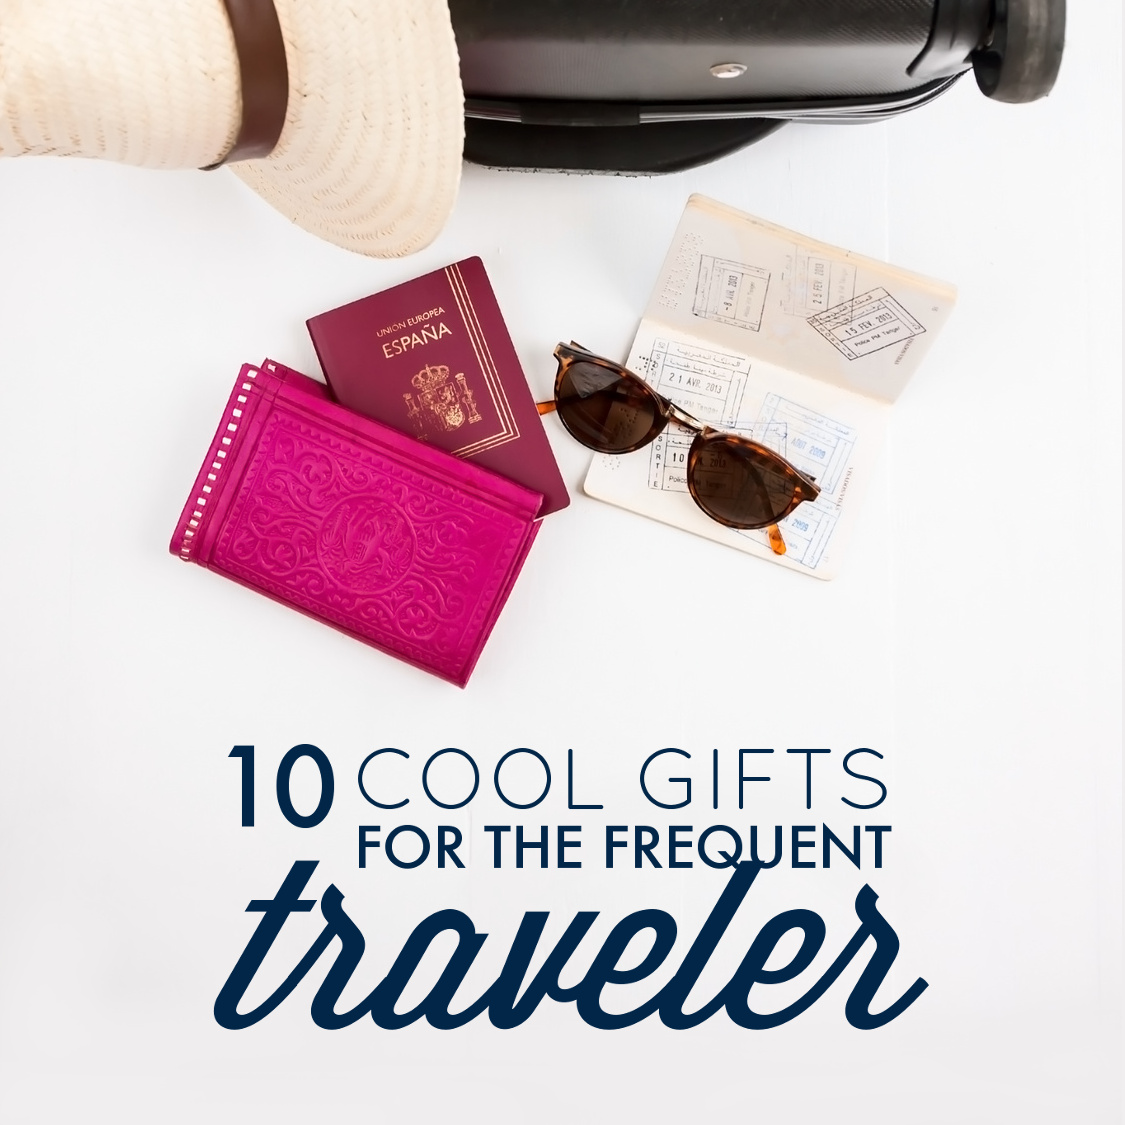 Best Gifts For Frequent Travelers